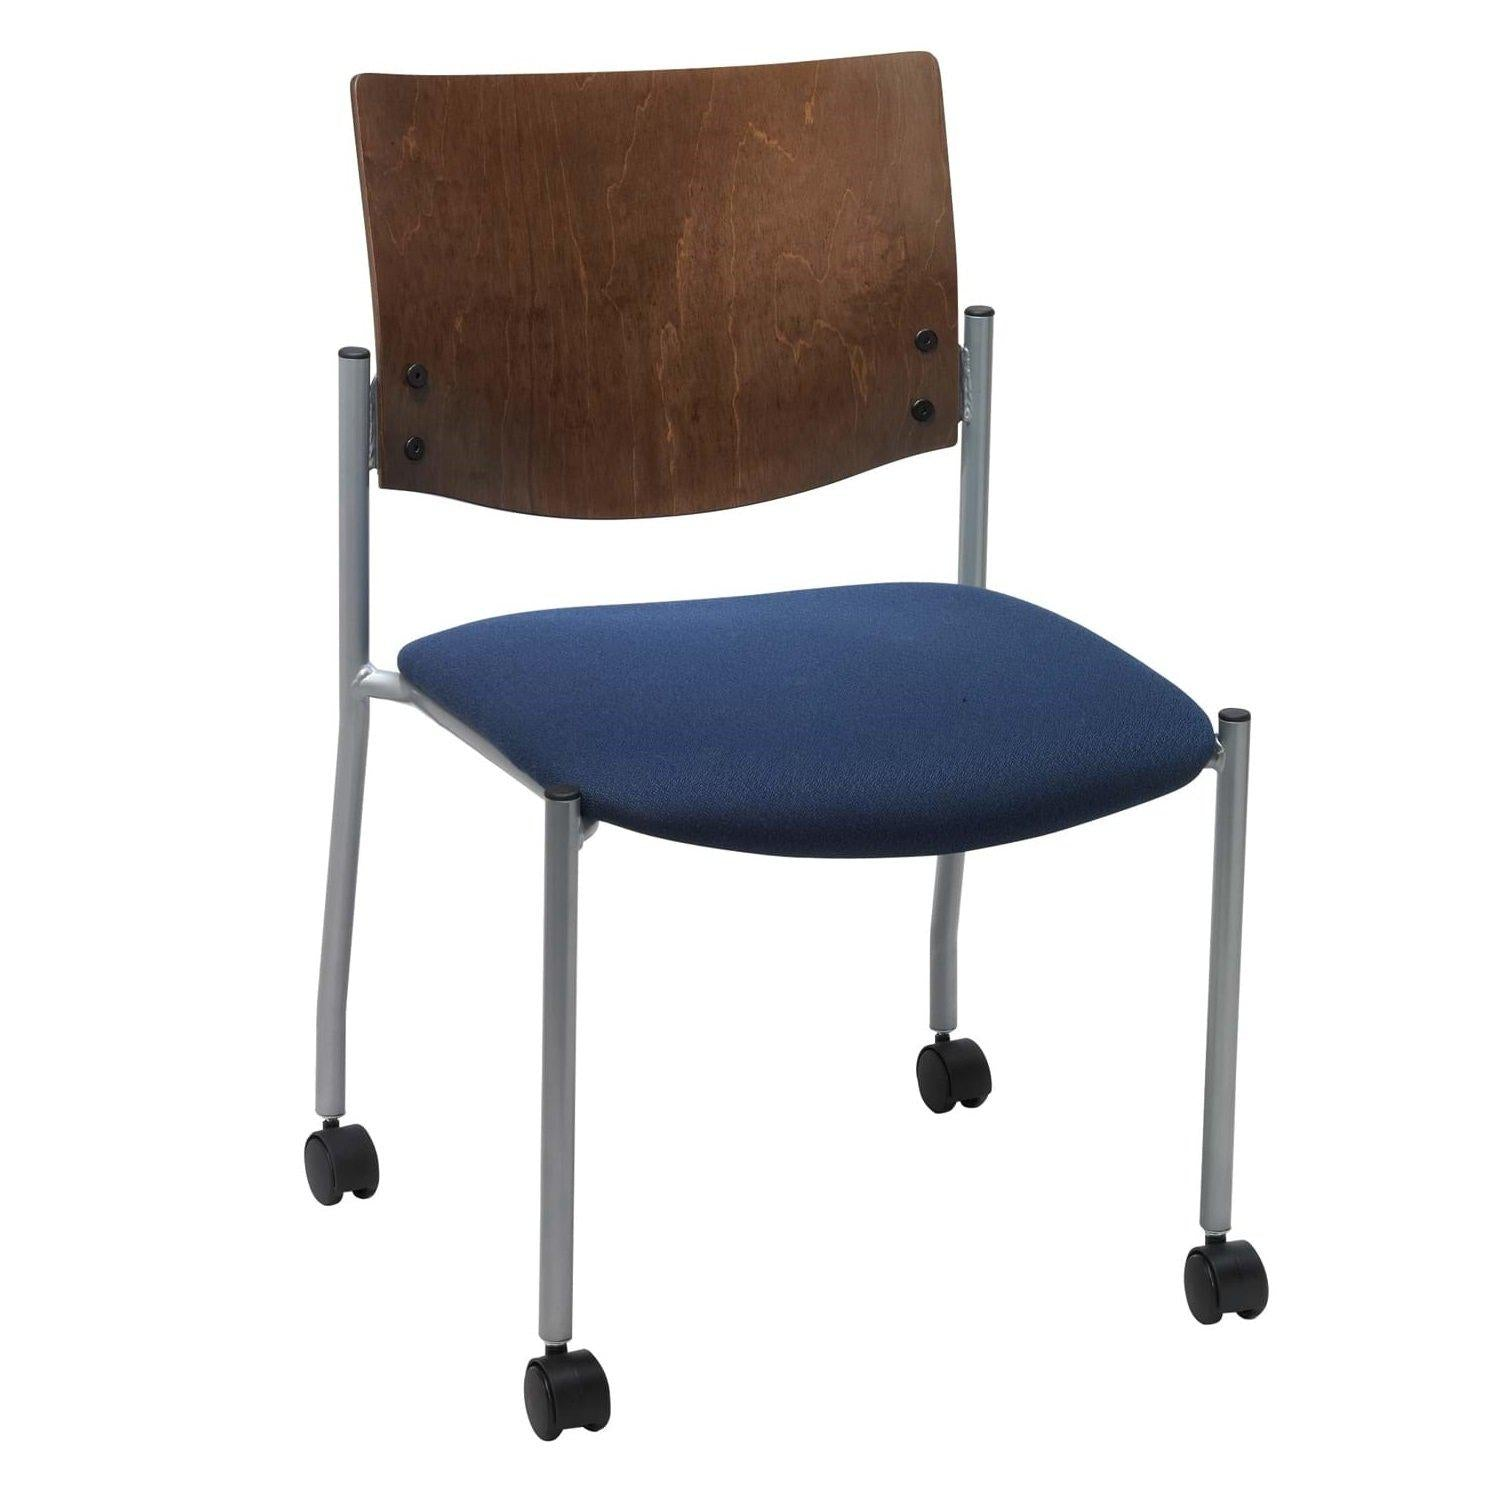 Evolve Chair with Casters, Wood Back, Padded Seat with Healthcare Vinyl Upholstery